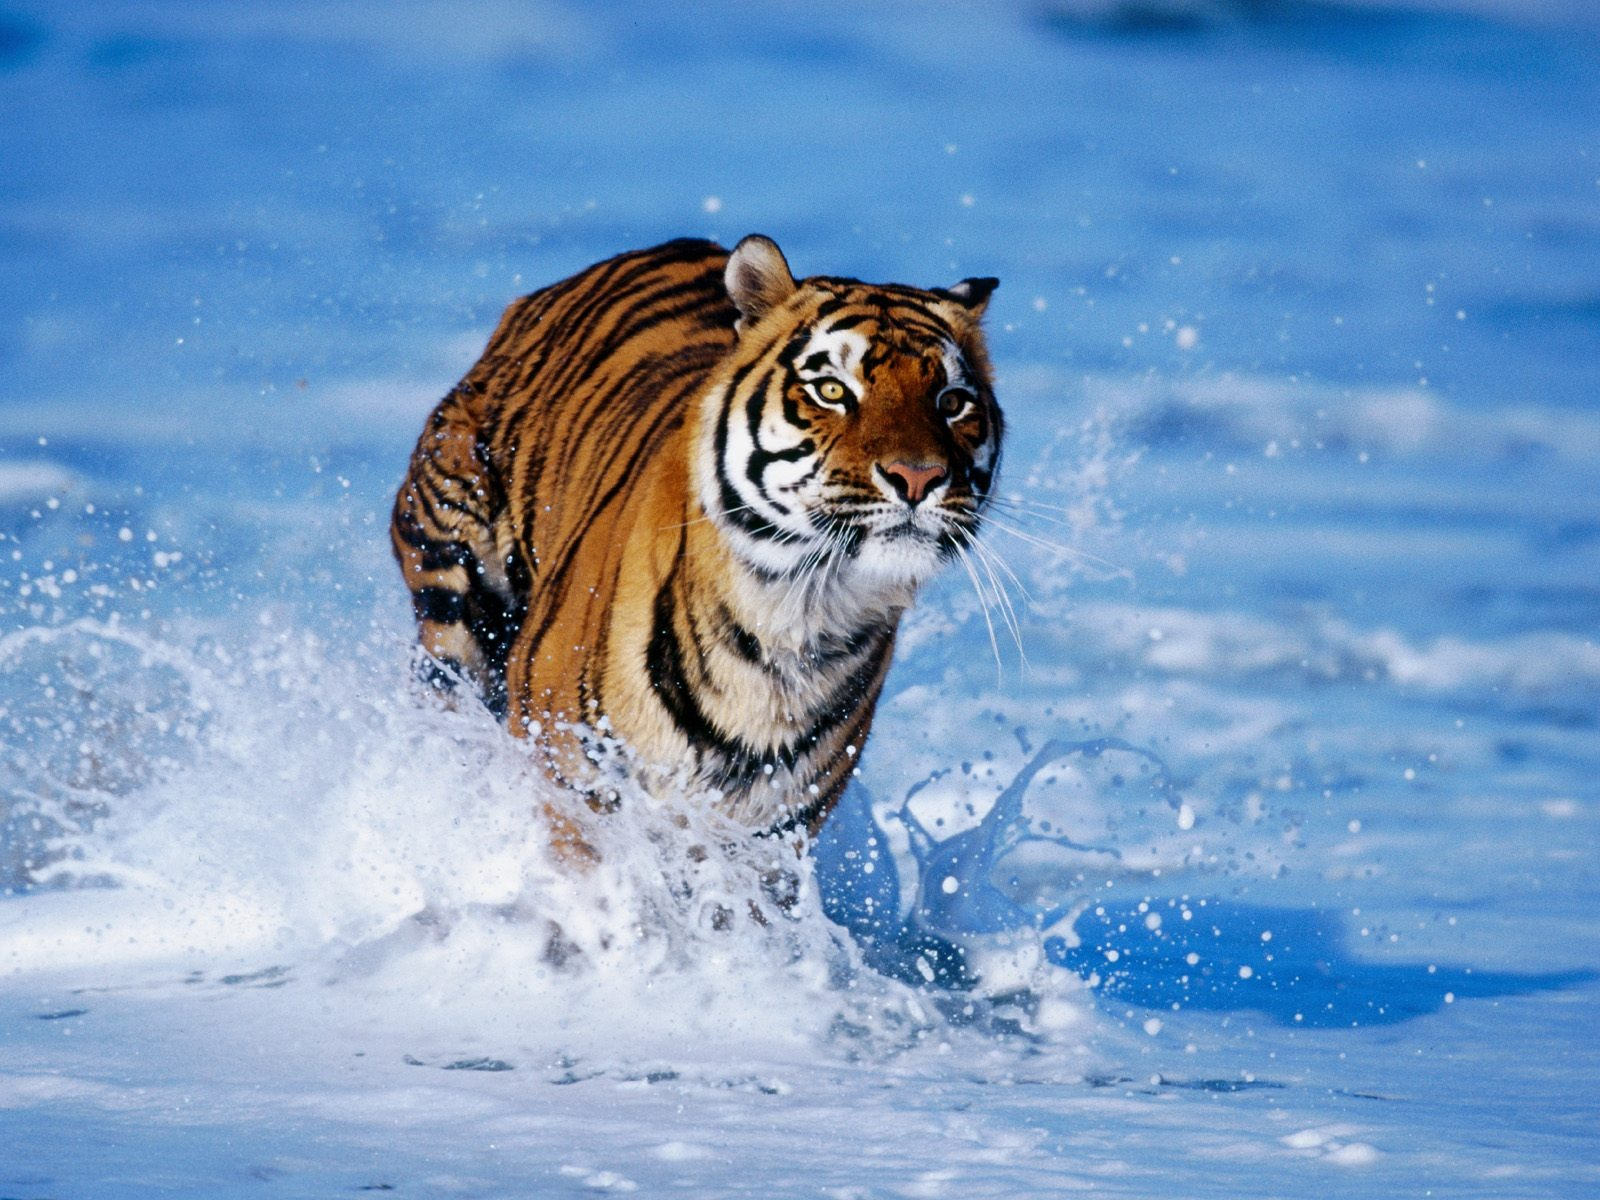 Tiger Wallpaper Free